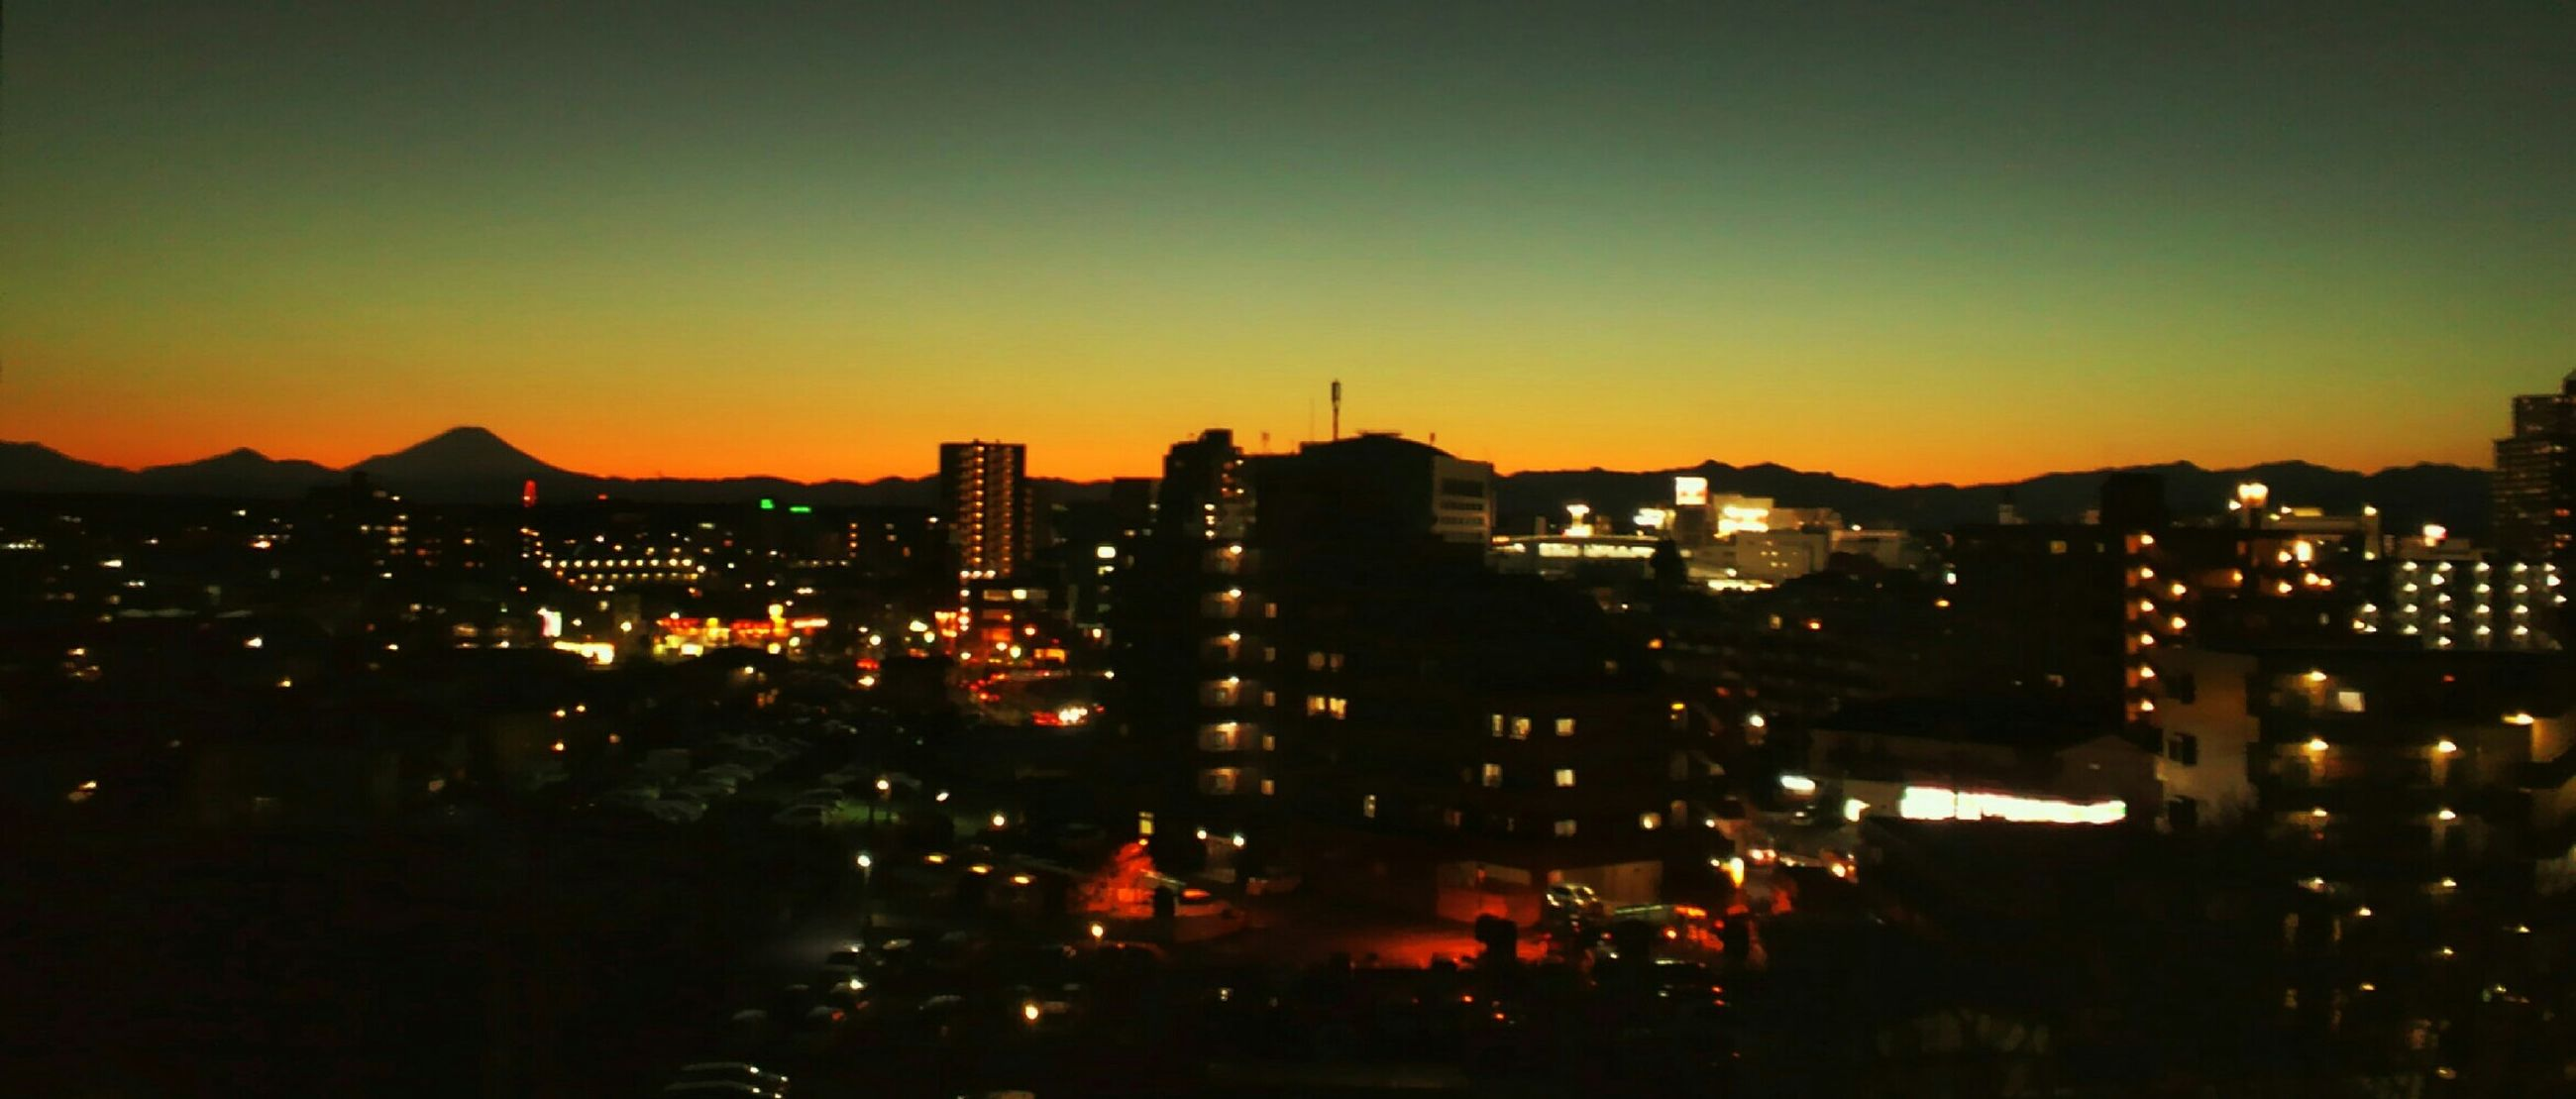 illuminated, building exterior, city, cityscape, sunset, architecture, built structure, copy space, high angle view, clear sky, night, orange color, city life, residential district, crowded, dusk, residential building, residential structure, sky, silhouette